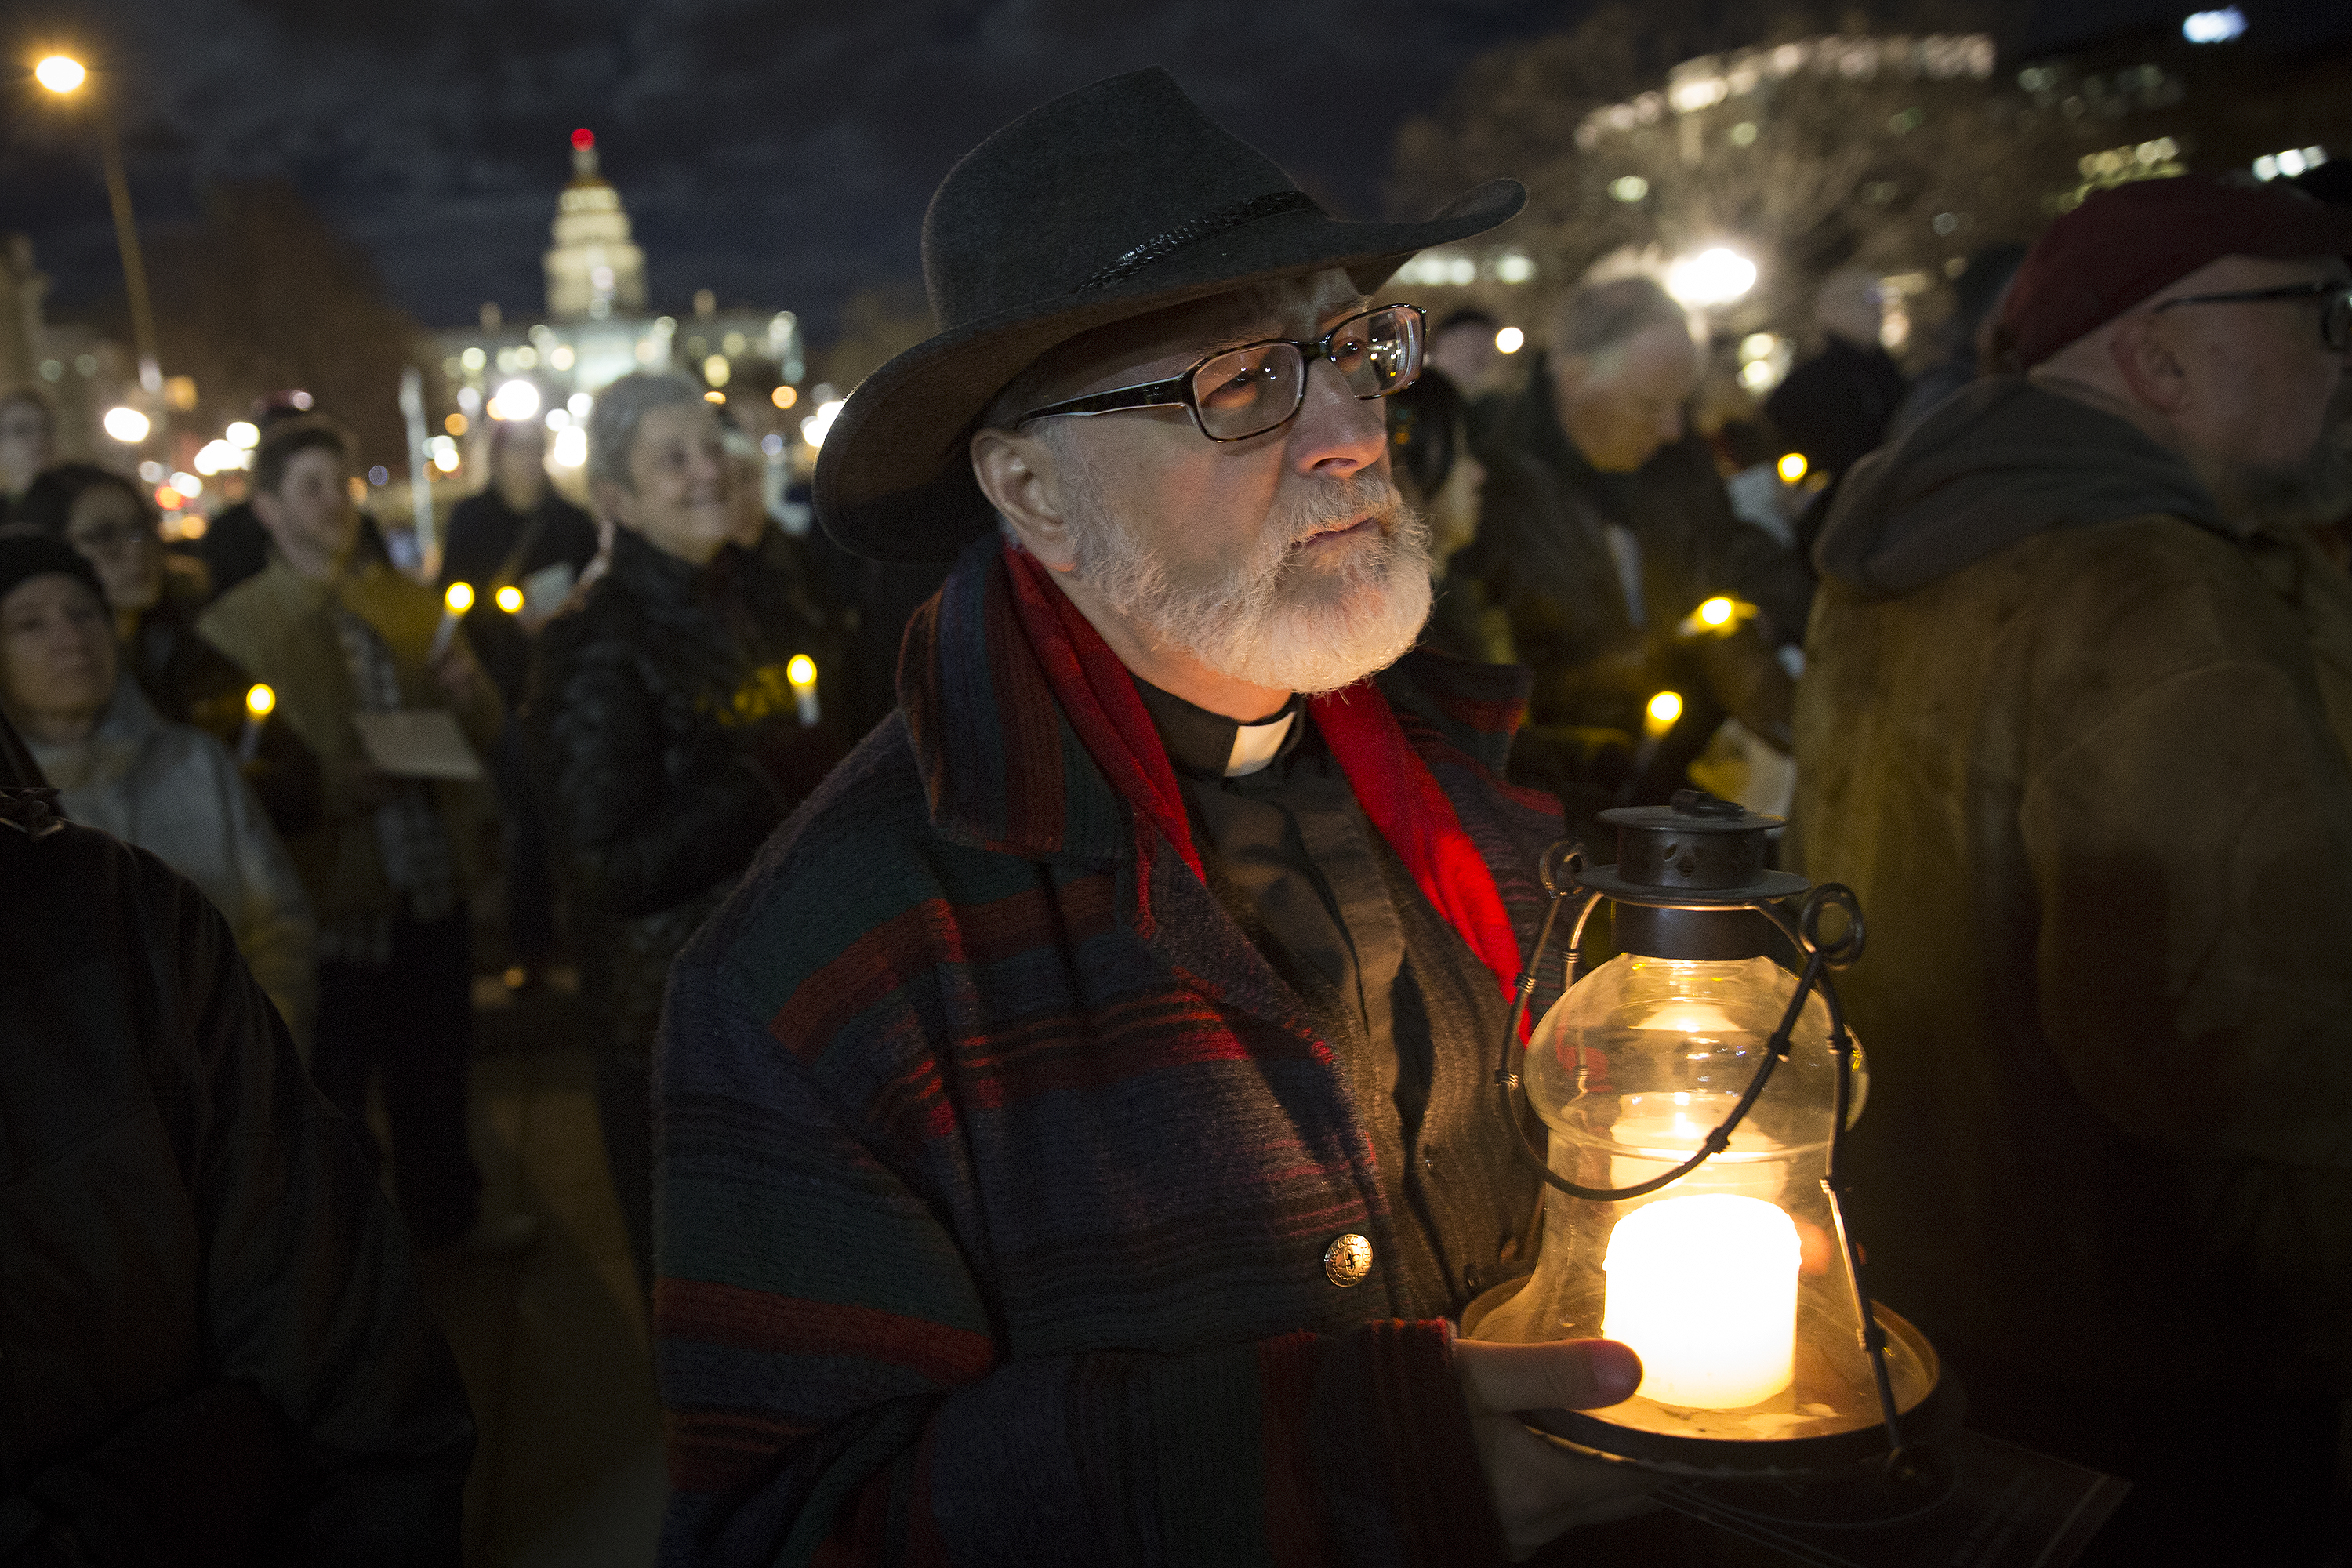 <p>Father Michael J. Nicosia, vicar to the Rocky Mountain region of the Ecumenical Catholic Communion, holds a lantern while taking part in thethe 29th Homeless Person's Memorial Vigil at the City and County building in Denver Friday Dec. 21, 2018.</p>  <p></p>